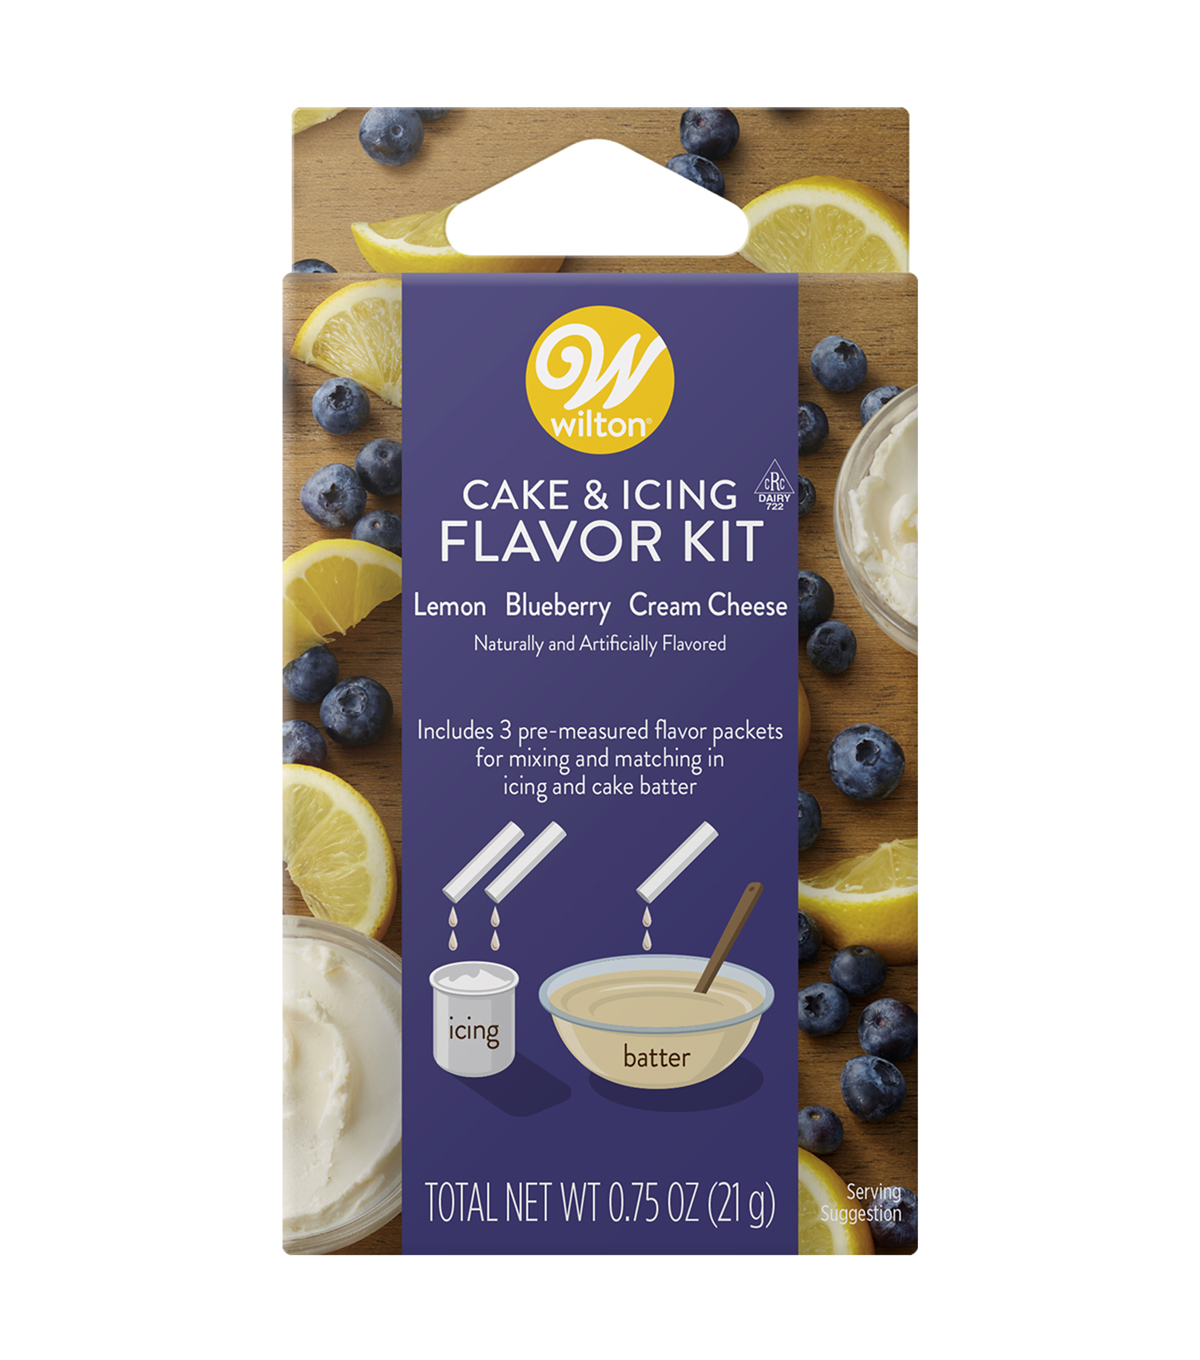 Wilton Cake and Icing Flavor Kit-Lemon Blueberry Cream Cheese